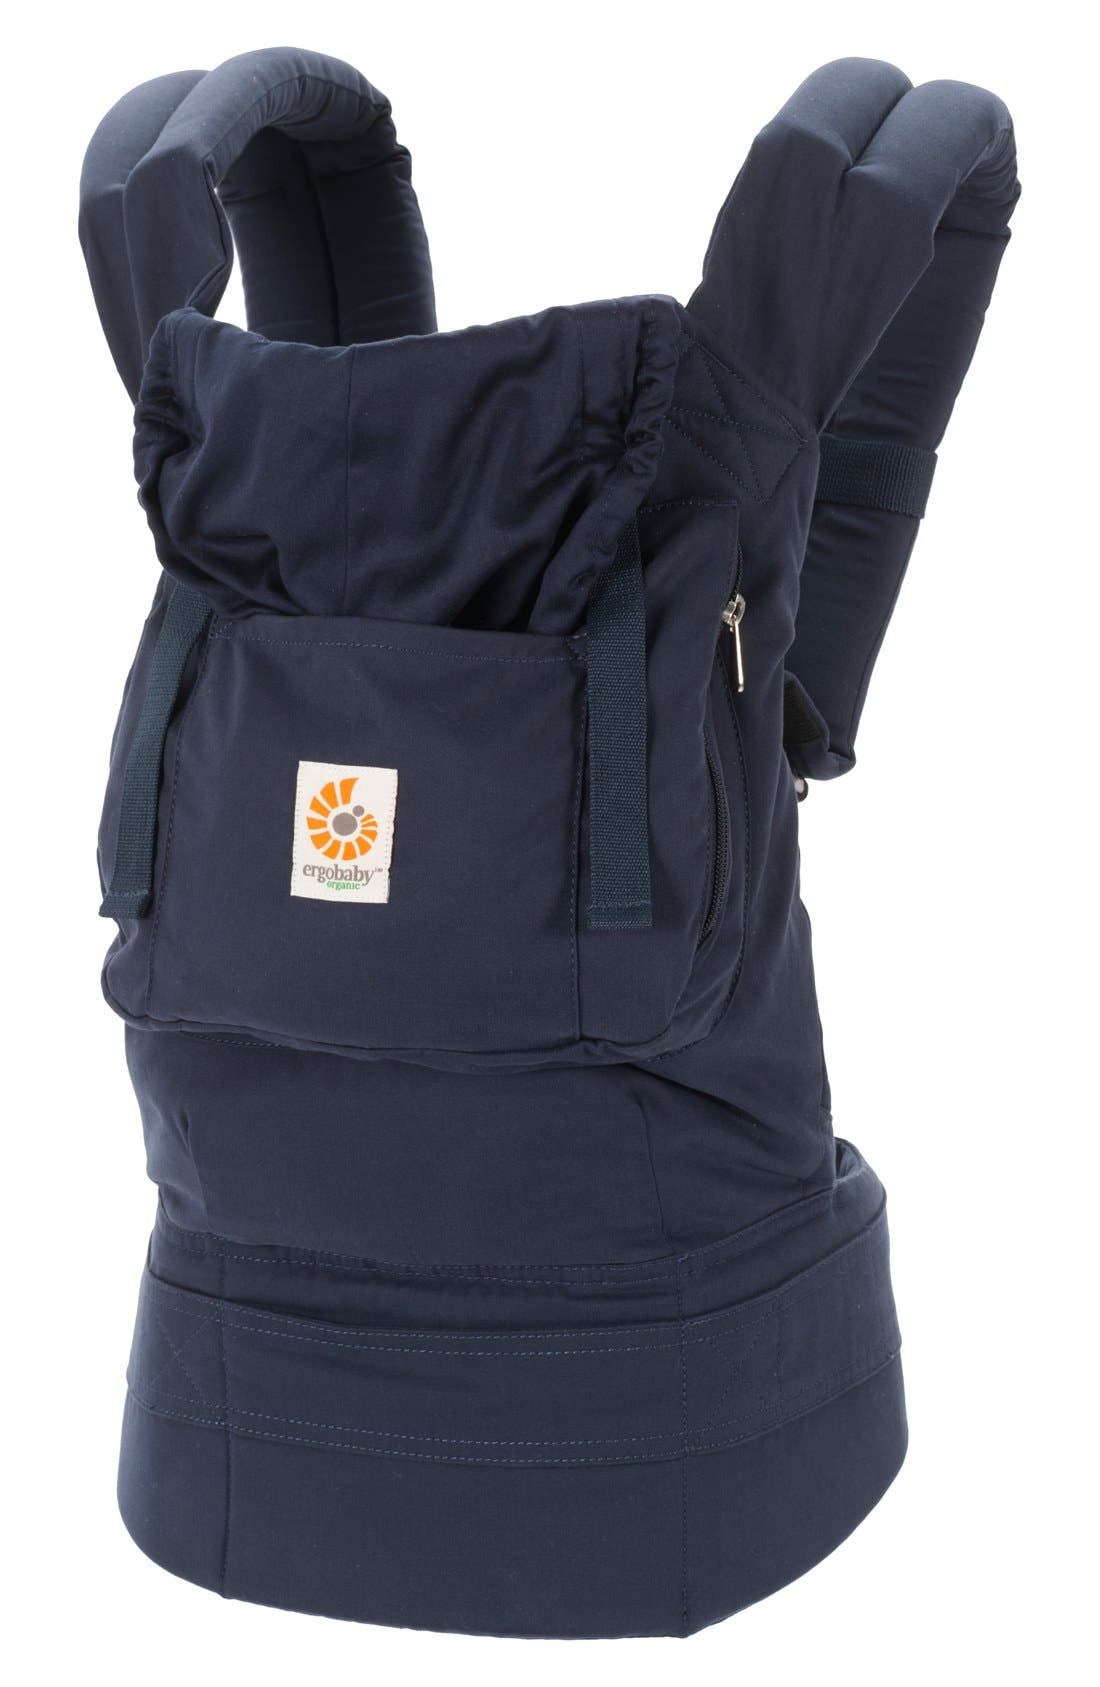 Infant Ergobaby Organic Cotton Baby Carrier Size One Size  Blue